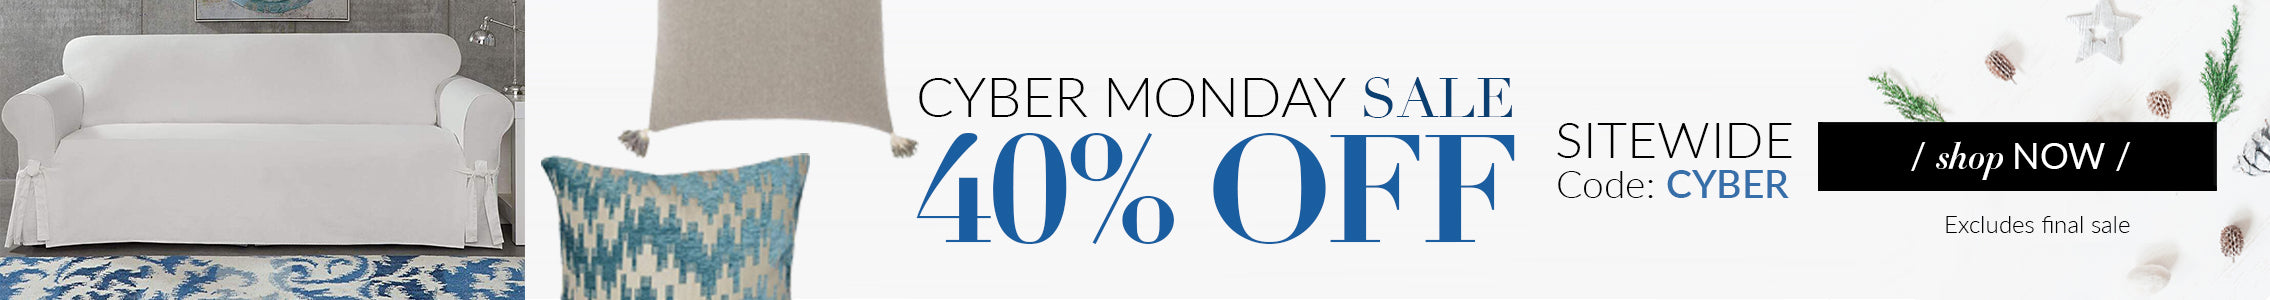 Cyber Monday | 40% Off Sitewide Excluding Final Sale